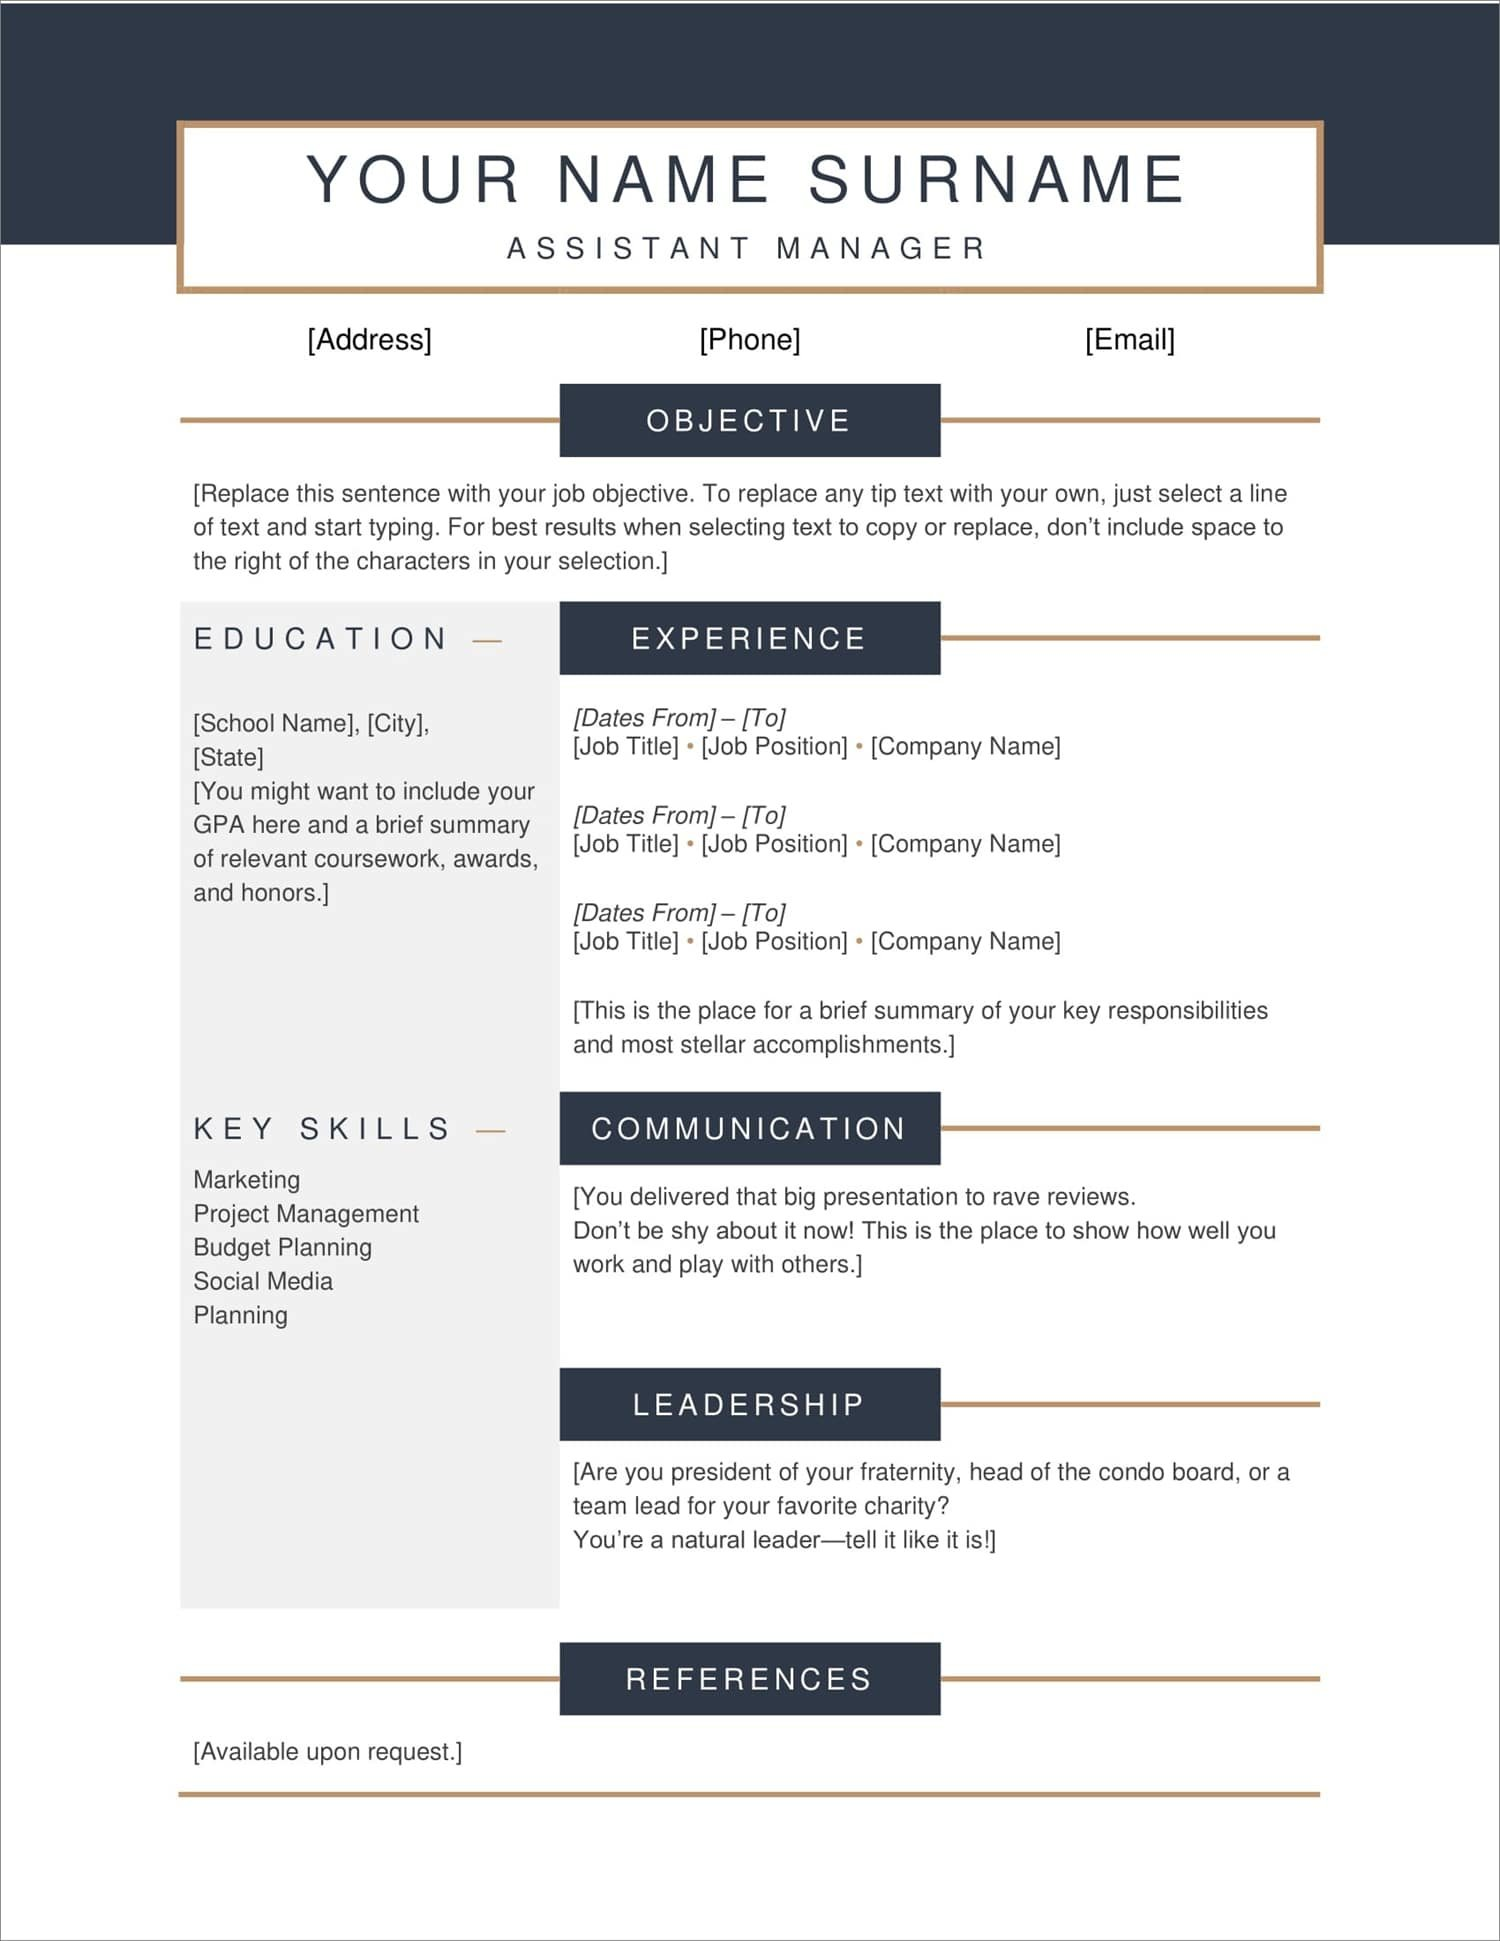 free resume templates for to now readymade format new describing language skills on Resume Free Readymade Resume Format